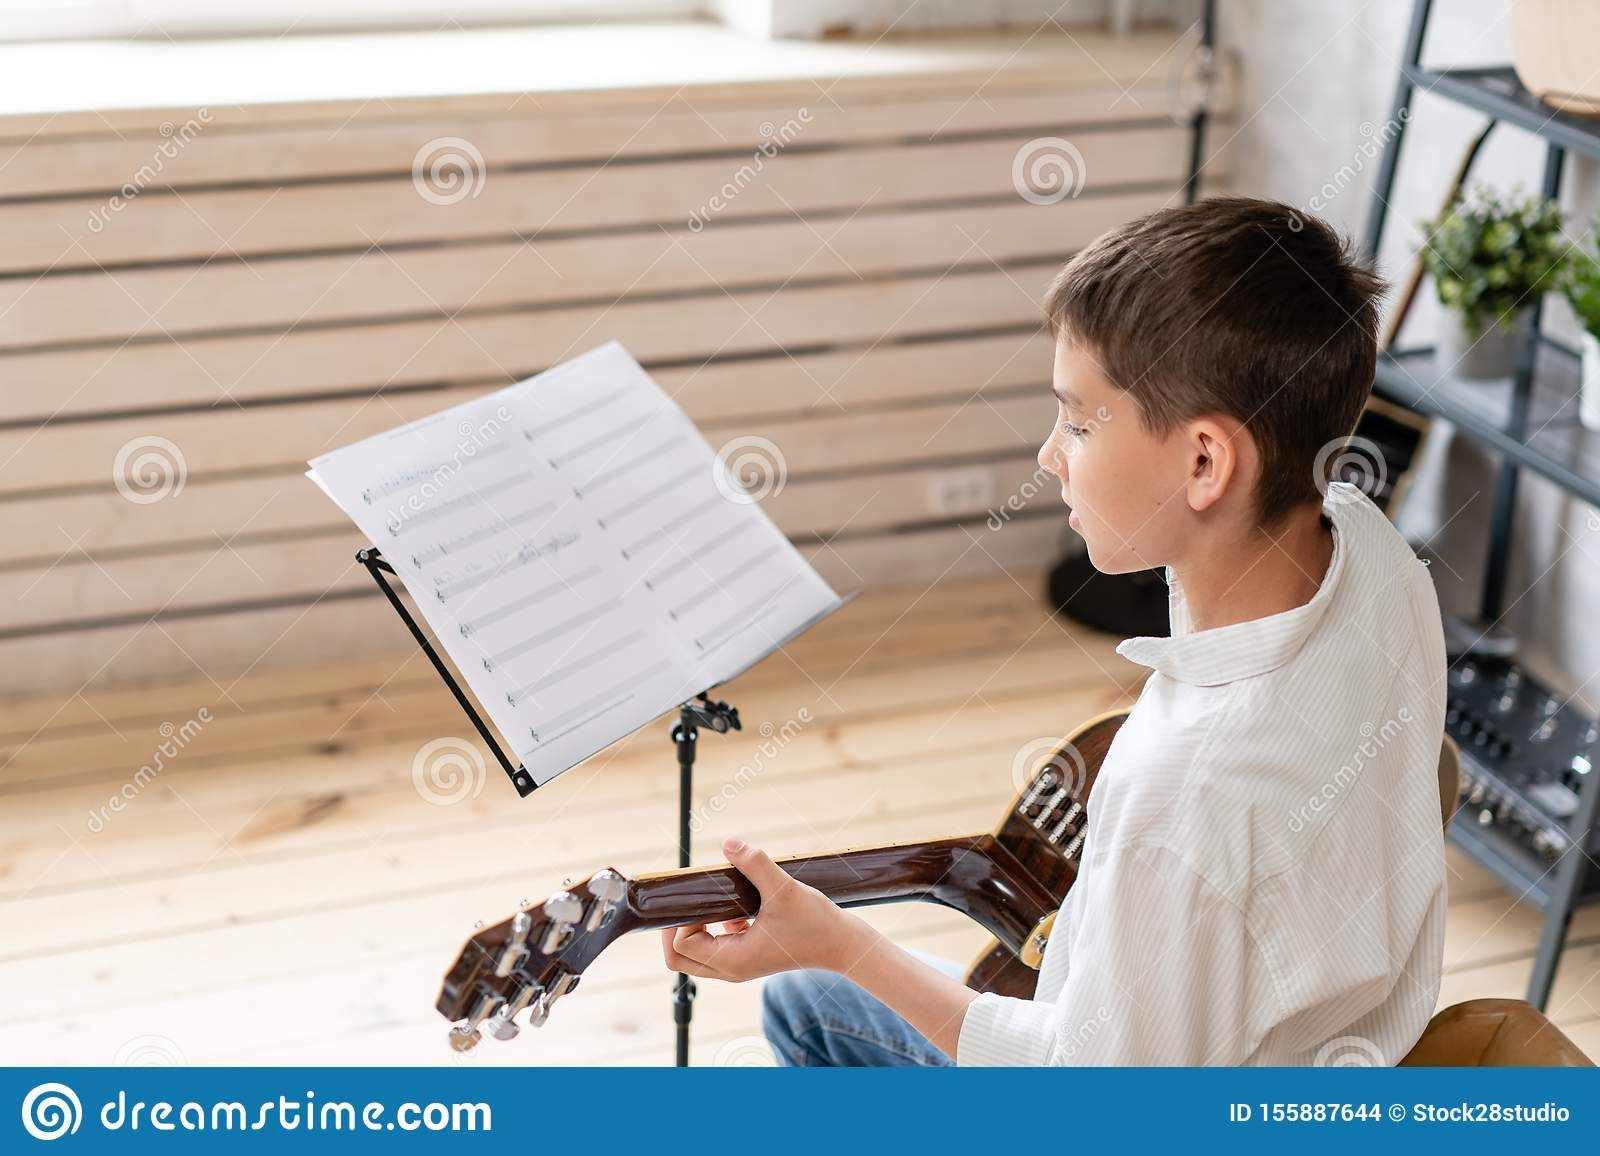 Teenager sits in chair behind sheet music and learning new melody for acoustic guitar